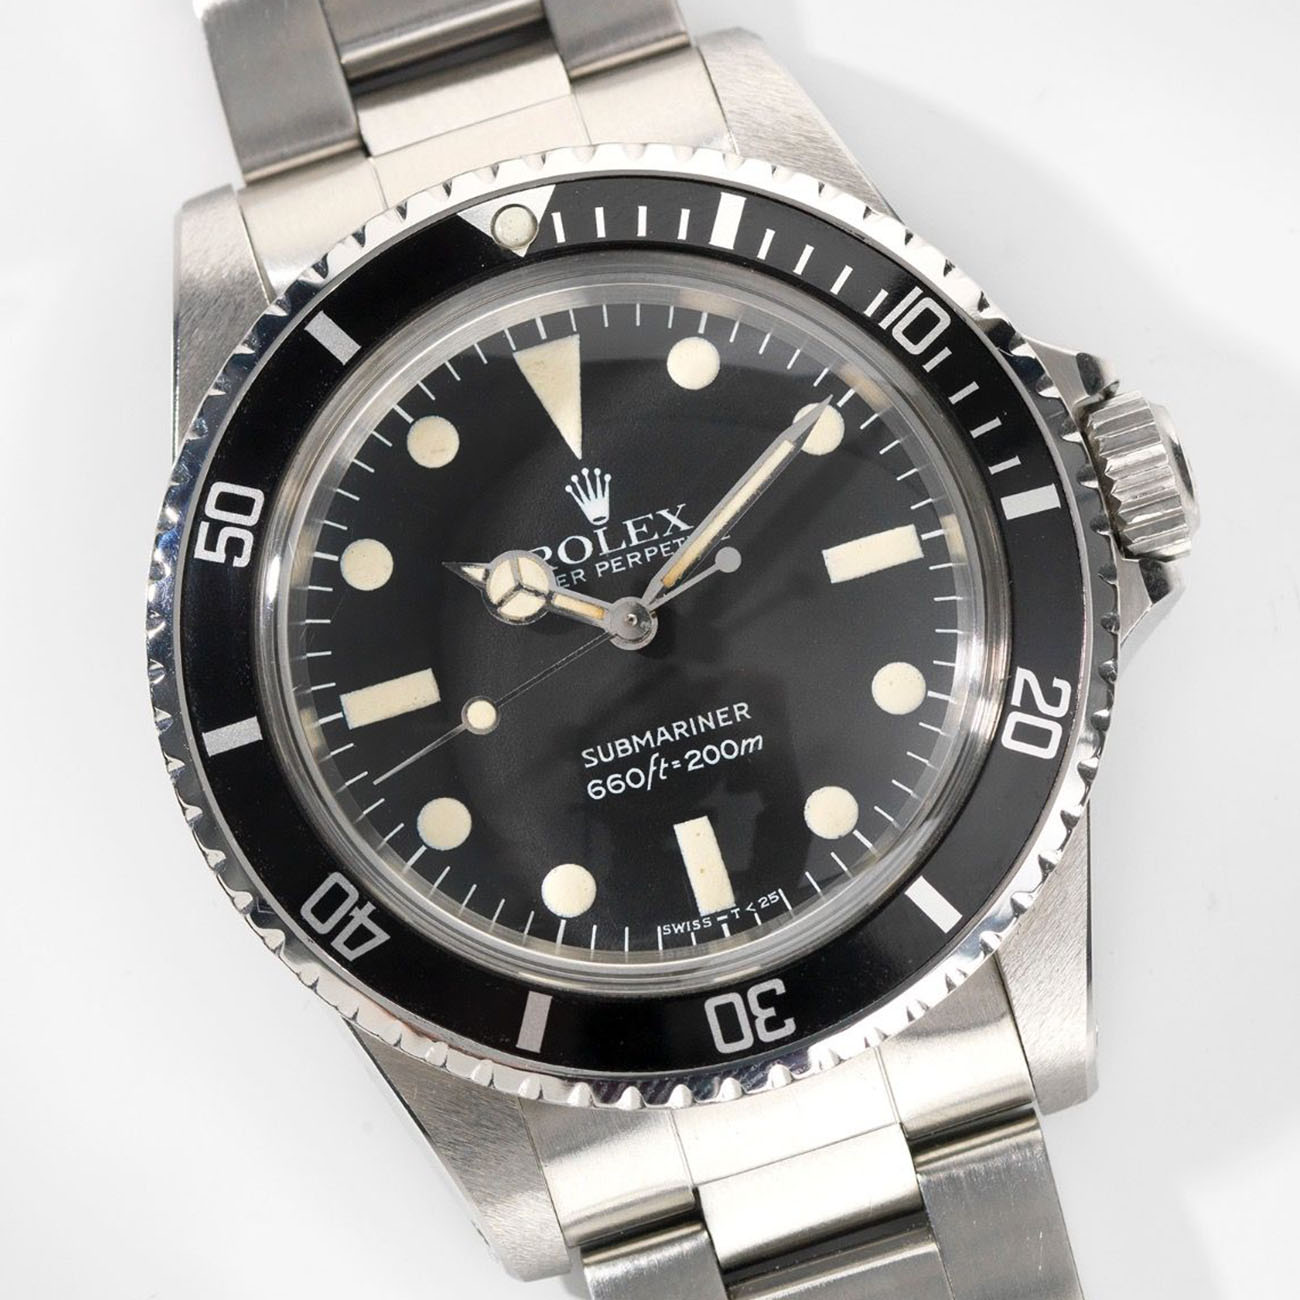 Vintage Rolex 5513 Submariner Love - Article at Bulang and Sons - Maxi MK4 Dial and Leather Watch Strap